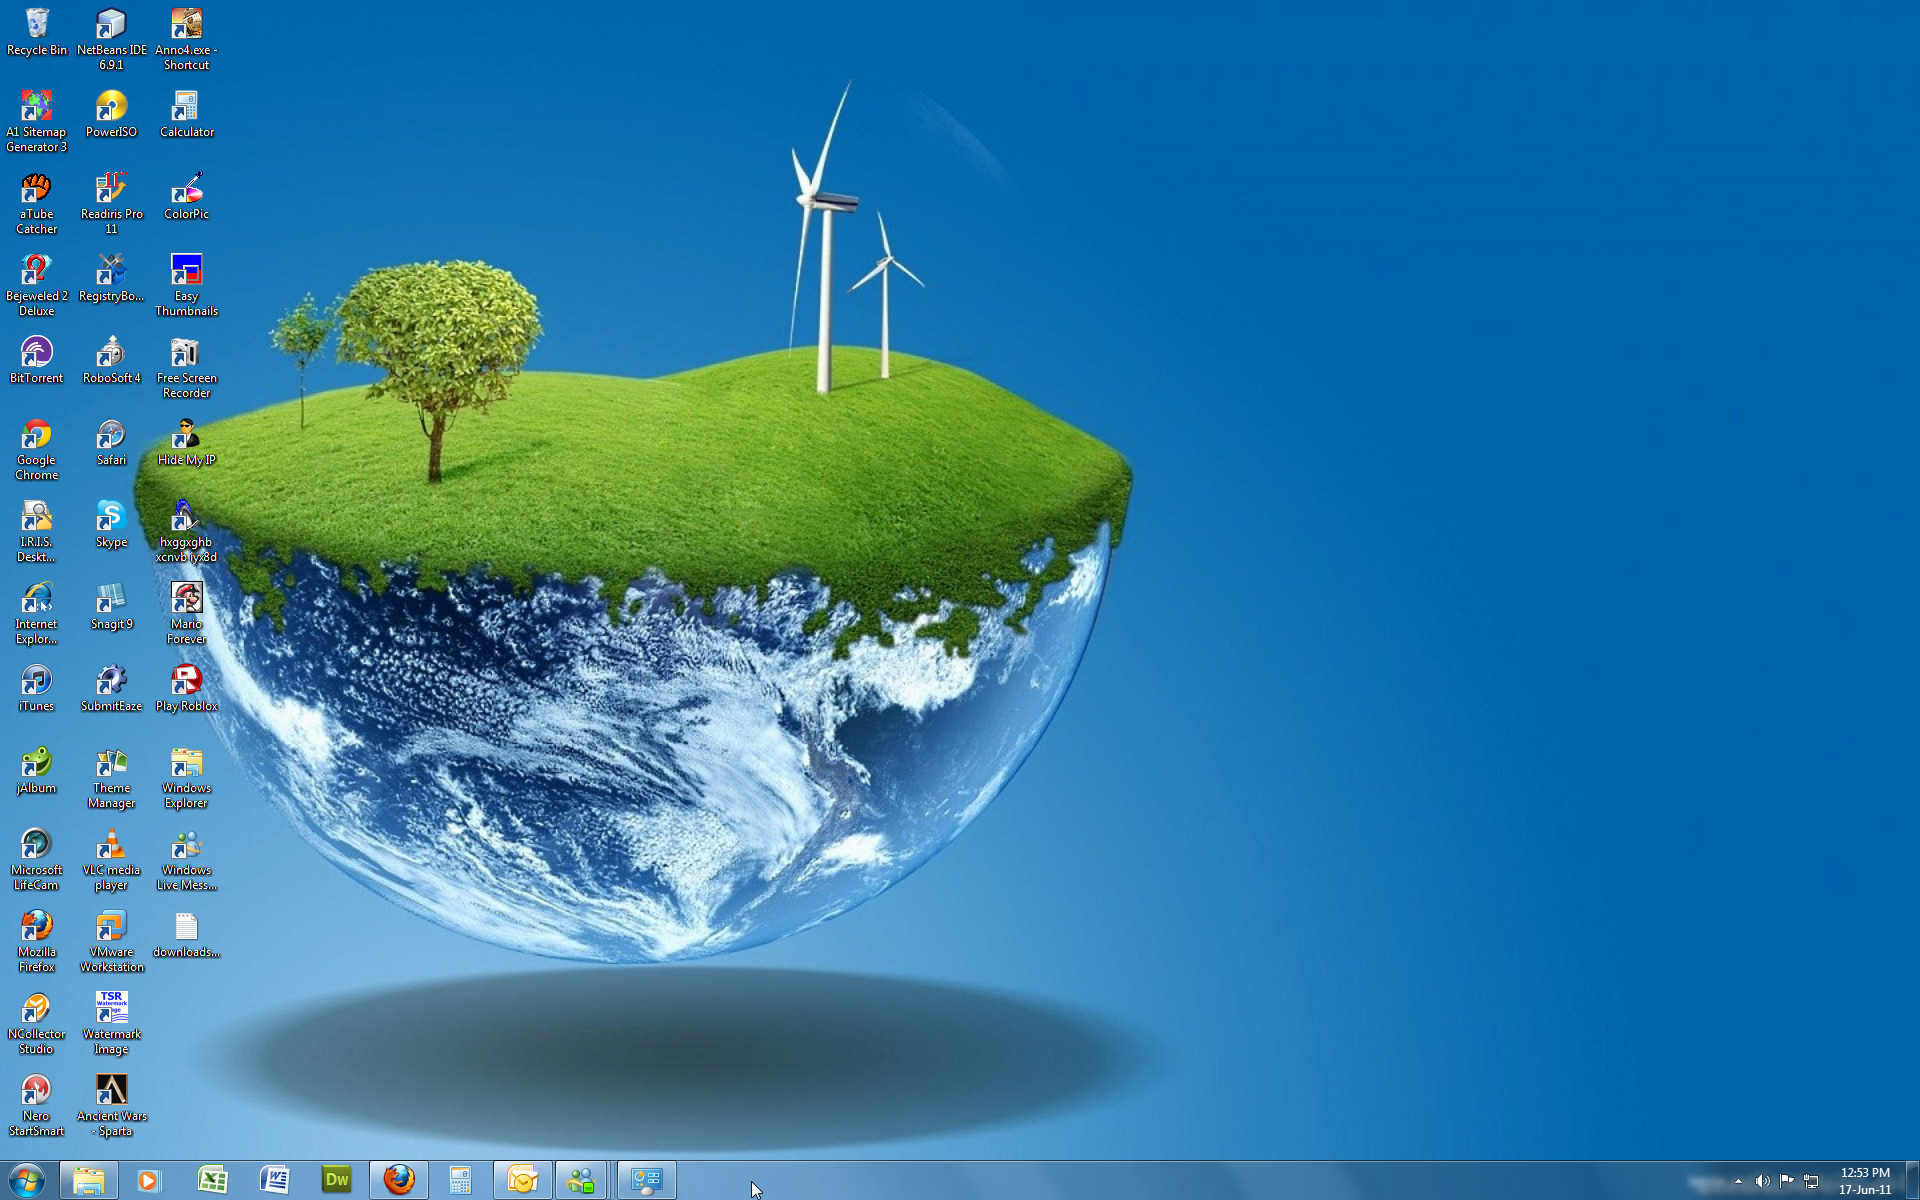 Free Desktop Themes Windows 7 Deviantart Com Art Windows 7 Theme 3d World 213374532 Planets Wallpaper Live Wallpapers Wallpaper